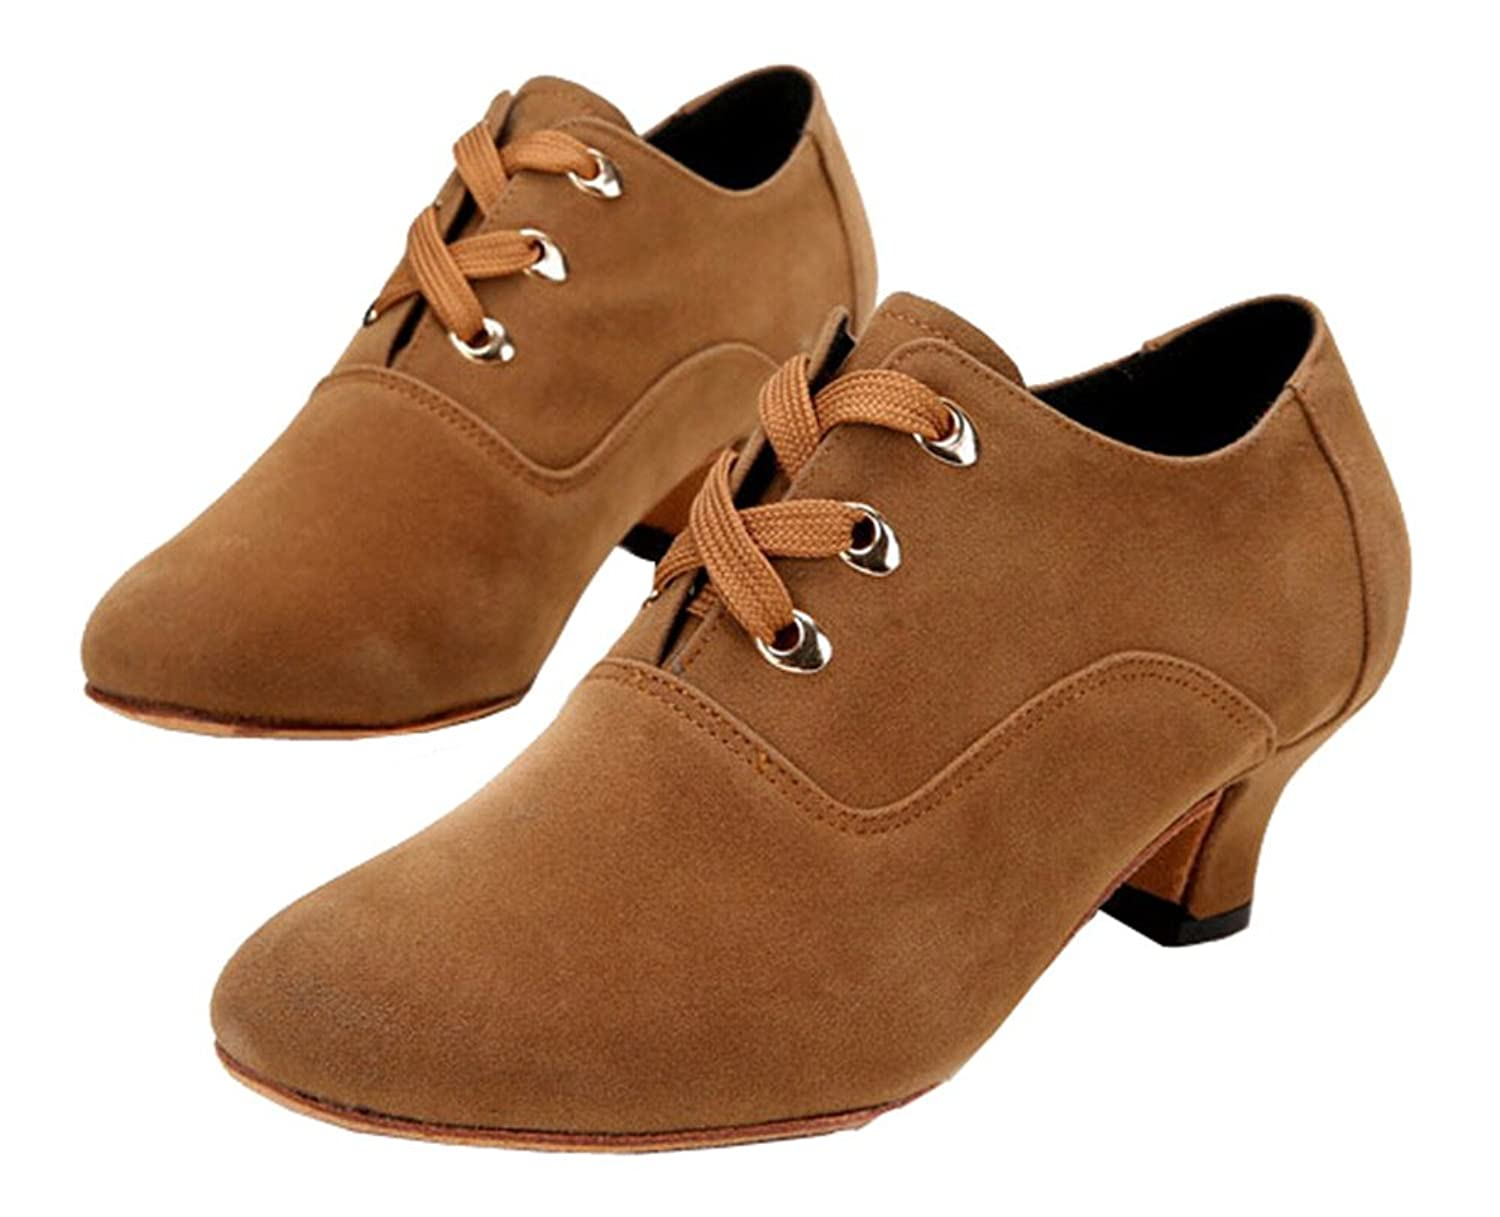 1940s Style Shoes, 40s Shoes Womens Modern Practice Social Dance Shoes Ankle Jazz Boots Lace-up $33.50 AT vintagedancer.com